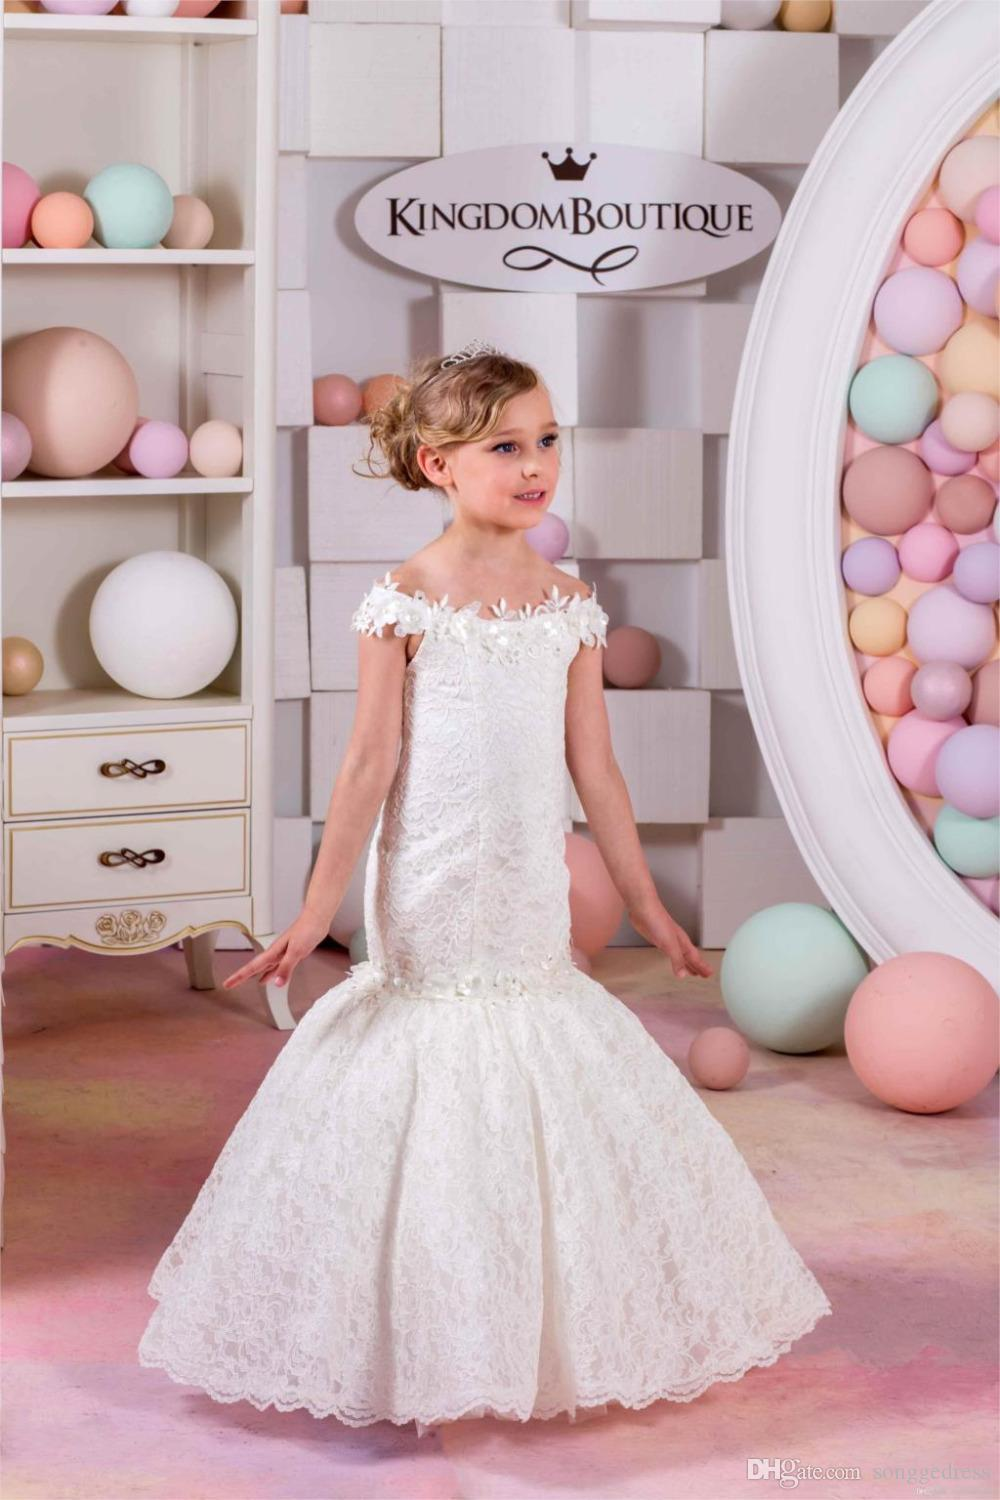 2017 Mermaid Lace Flower Girl Dresses For Weddings Ivory Kids Evening Dress Holy Communion Girls Pageant Gowns Wedding